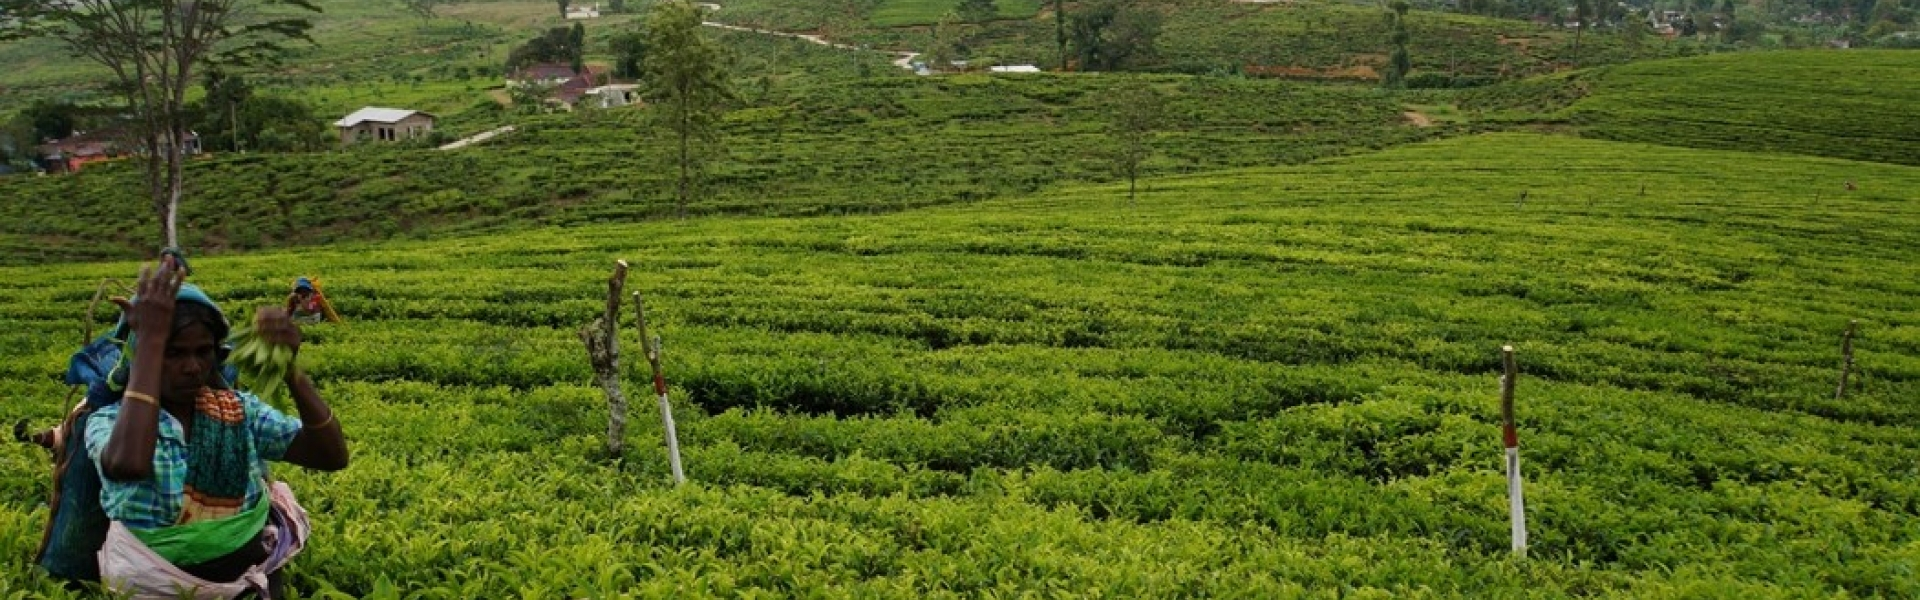 New project evaluation visit of Fair-grounds Foundation to Abbotsleigh Tea Estate